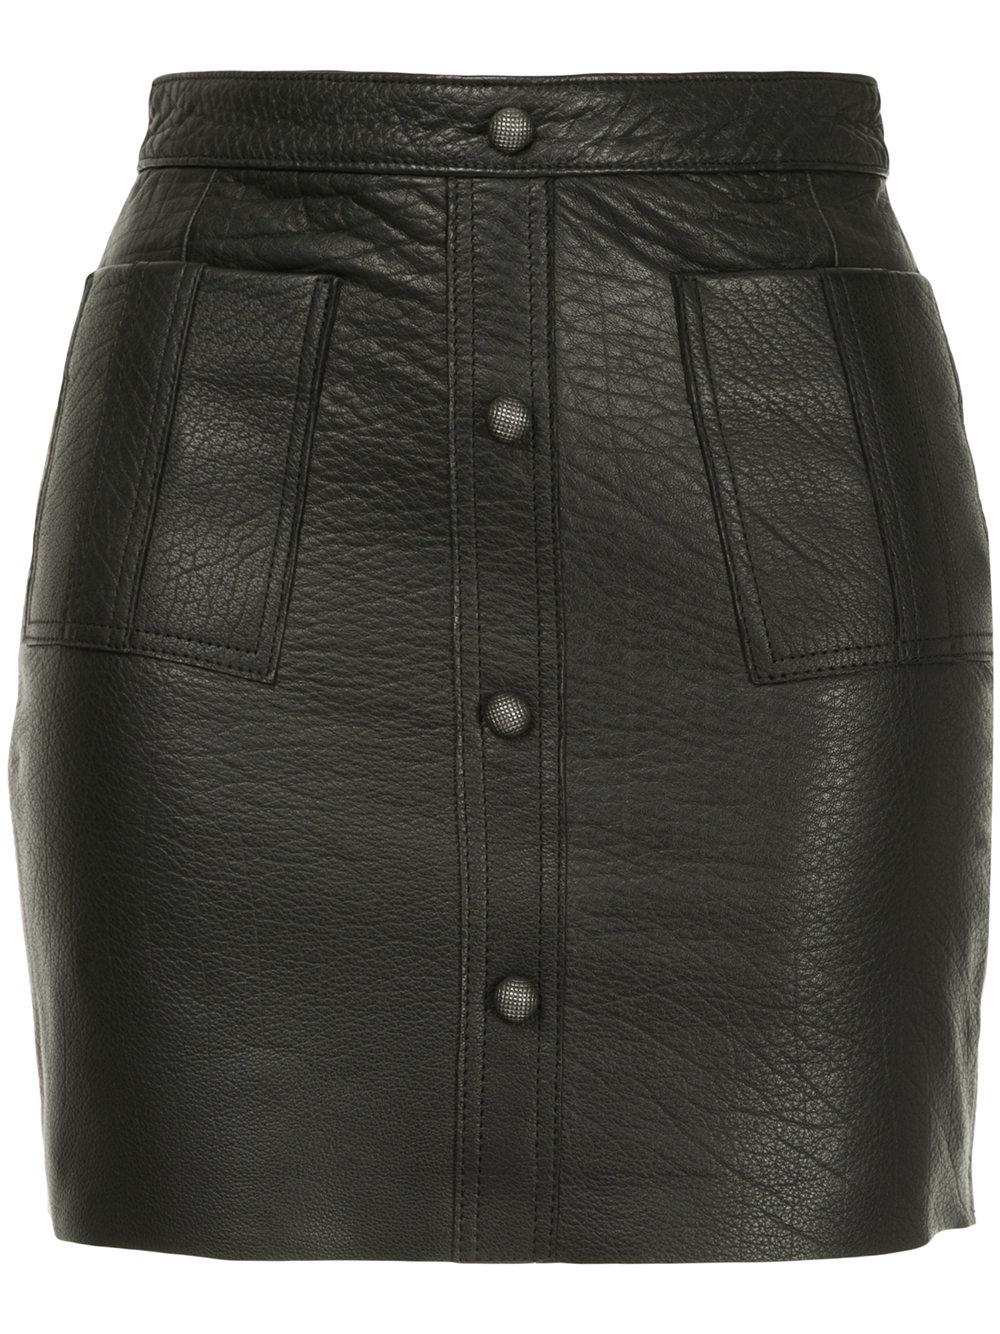 829a5b2f6 Aje Shrimpton Mini Skirt - Black | ModeSens